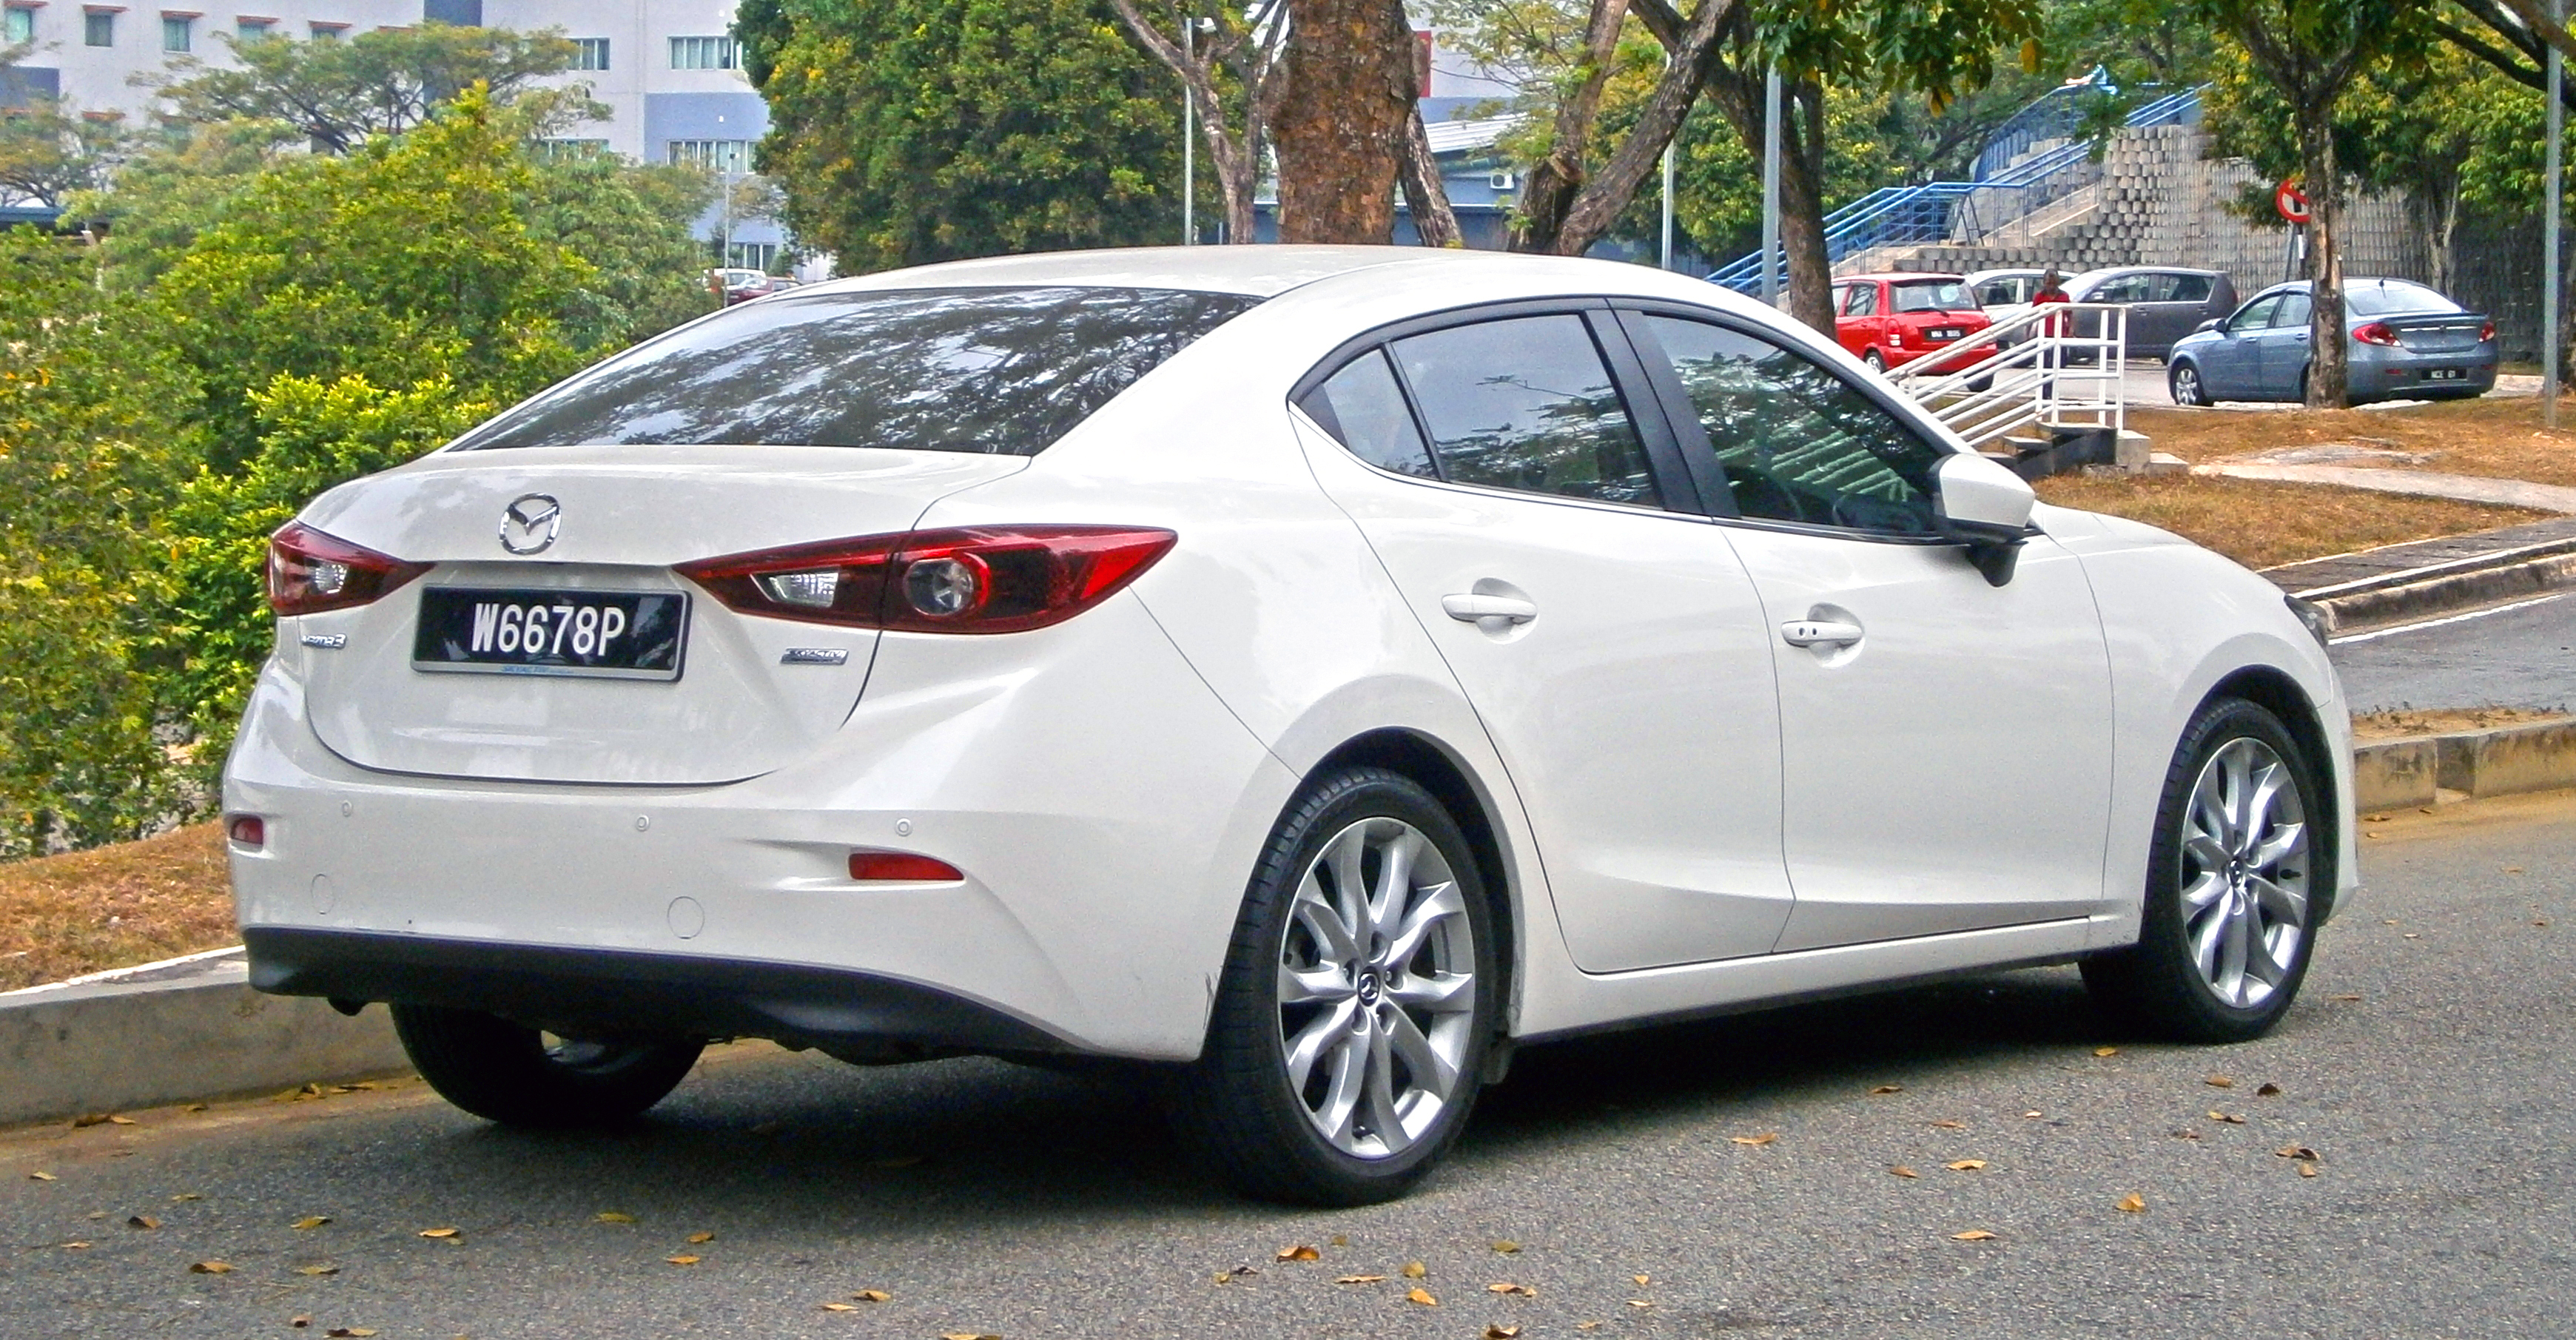 2014 mazda 3 pearl white images. Black Bedroom Furniture Sets. Home Design Ideas